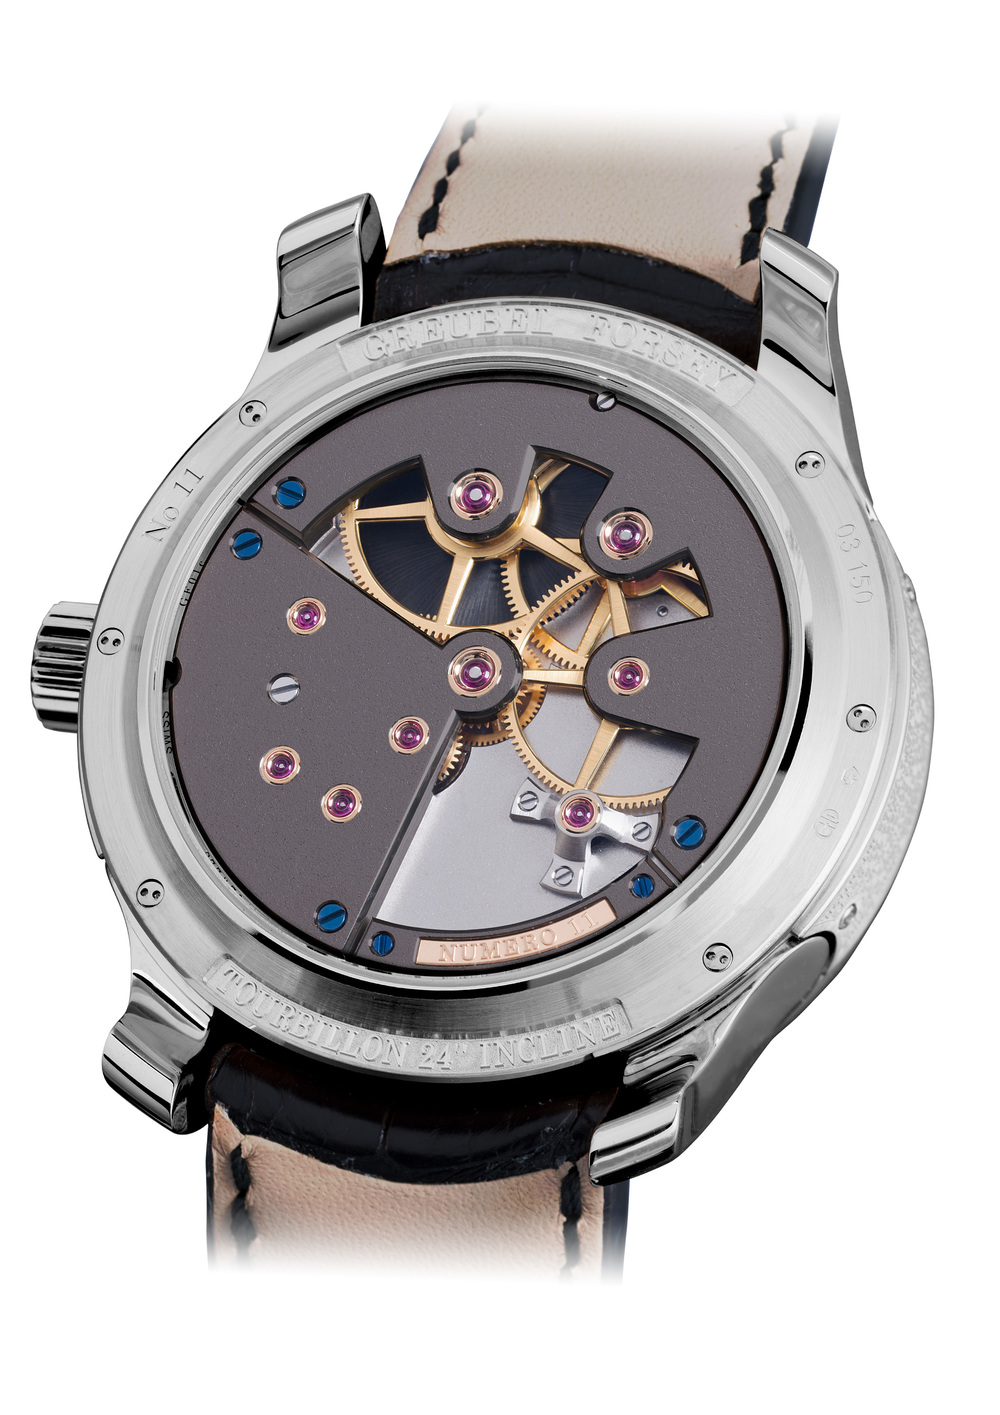 The Tourbillon 24 Secondes Contemporain in white gold